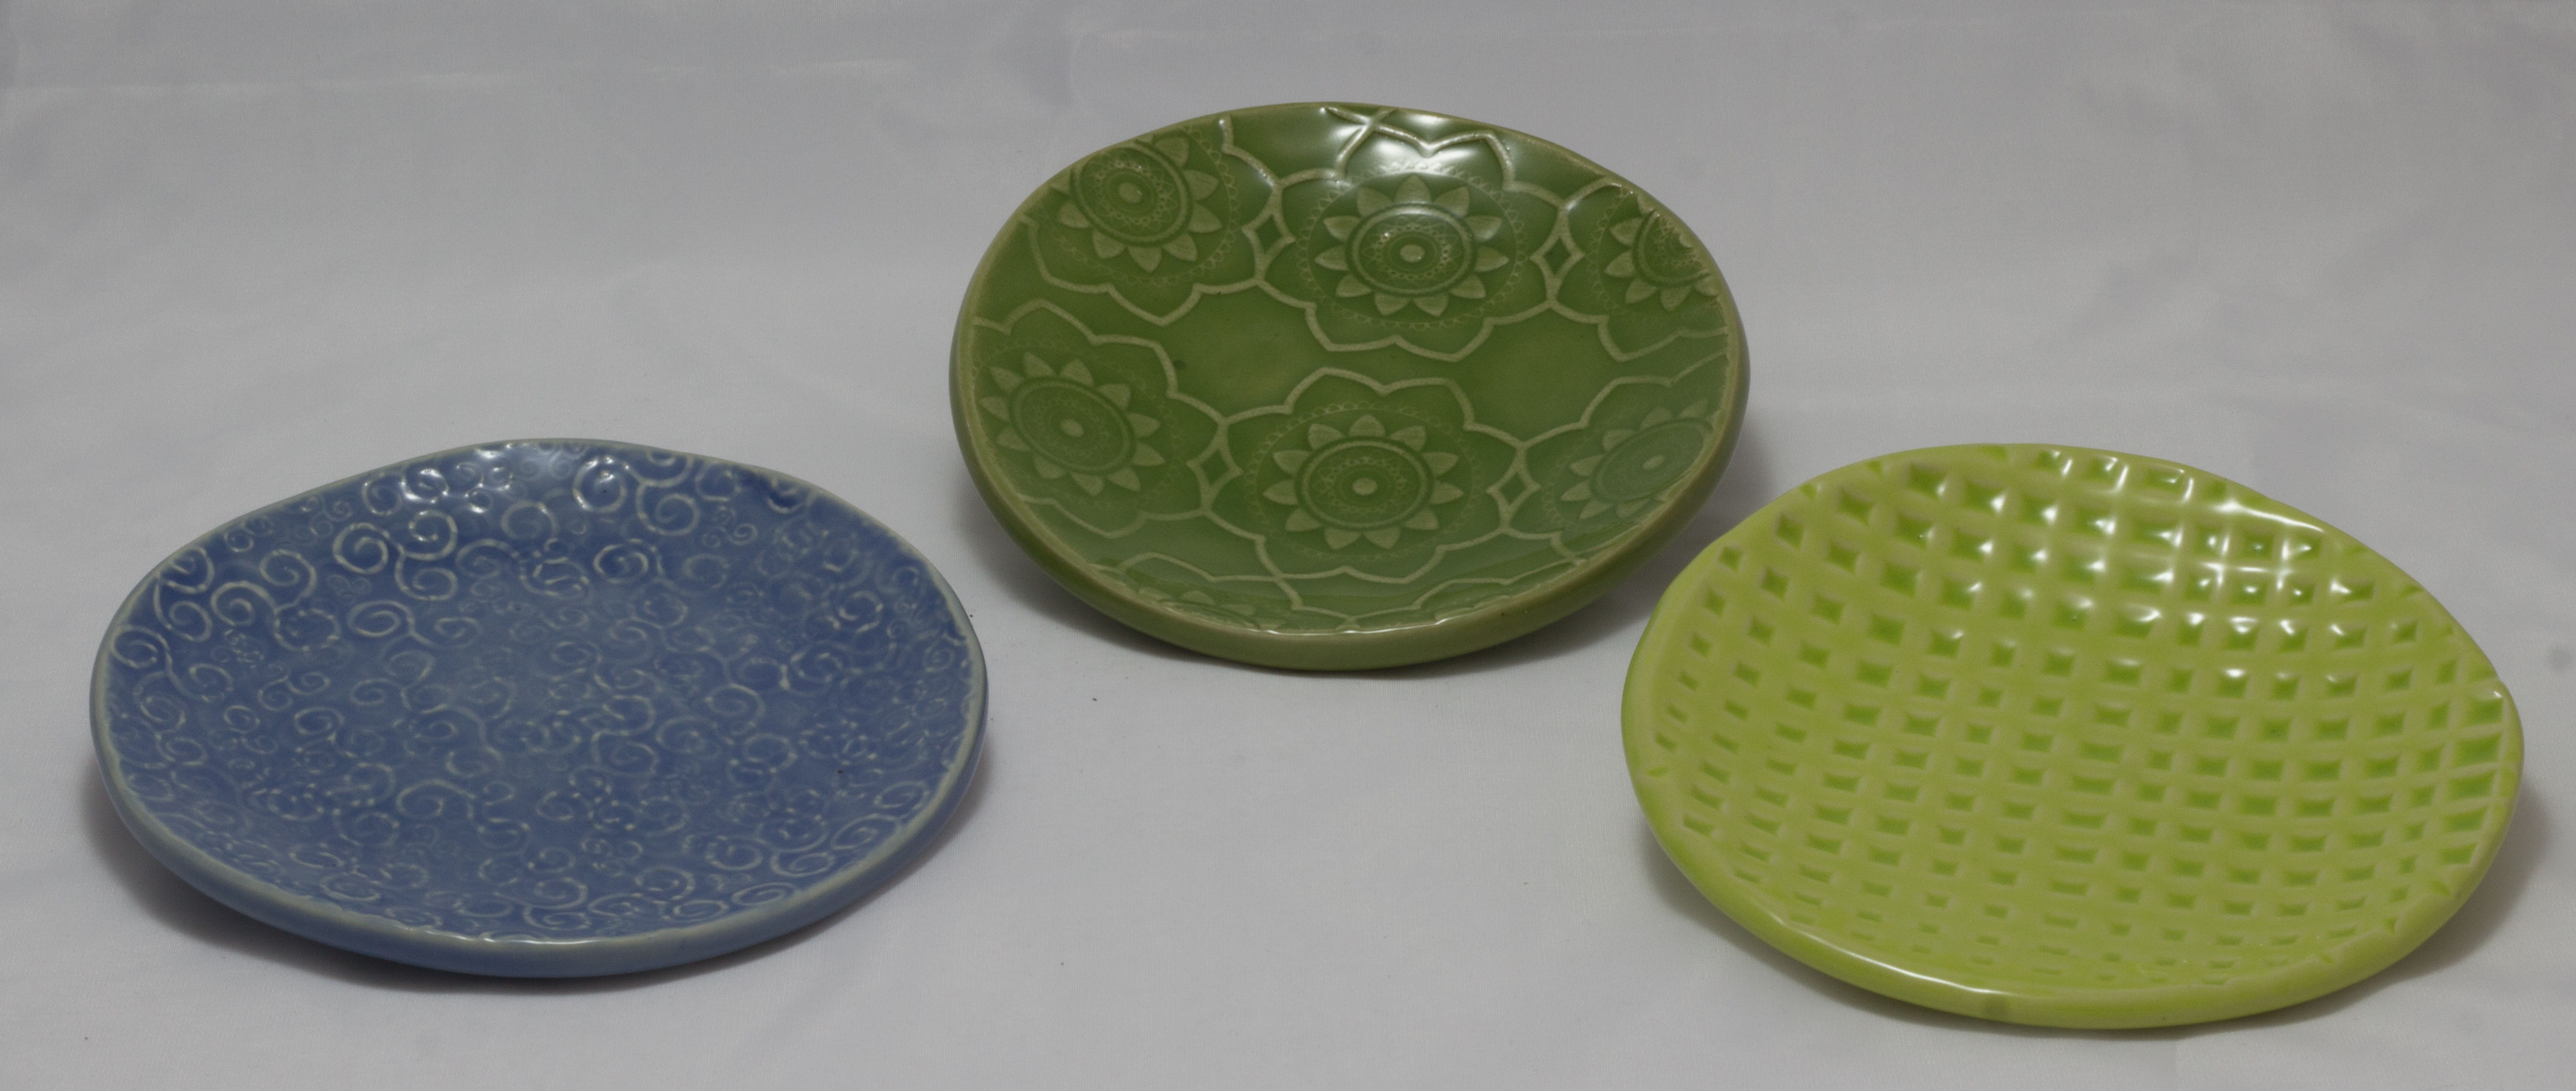 "5"" ring dishes"